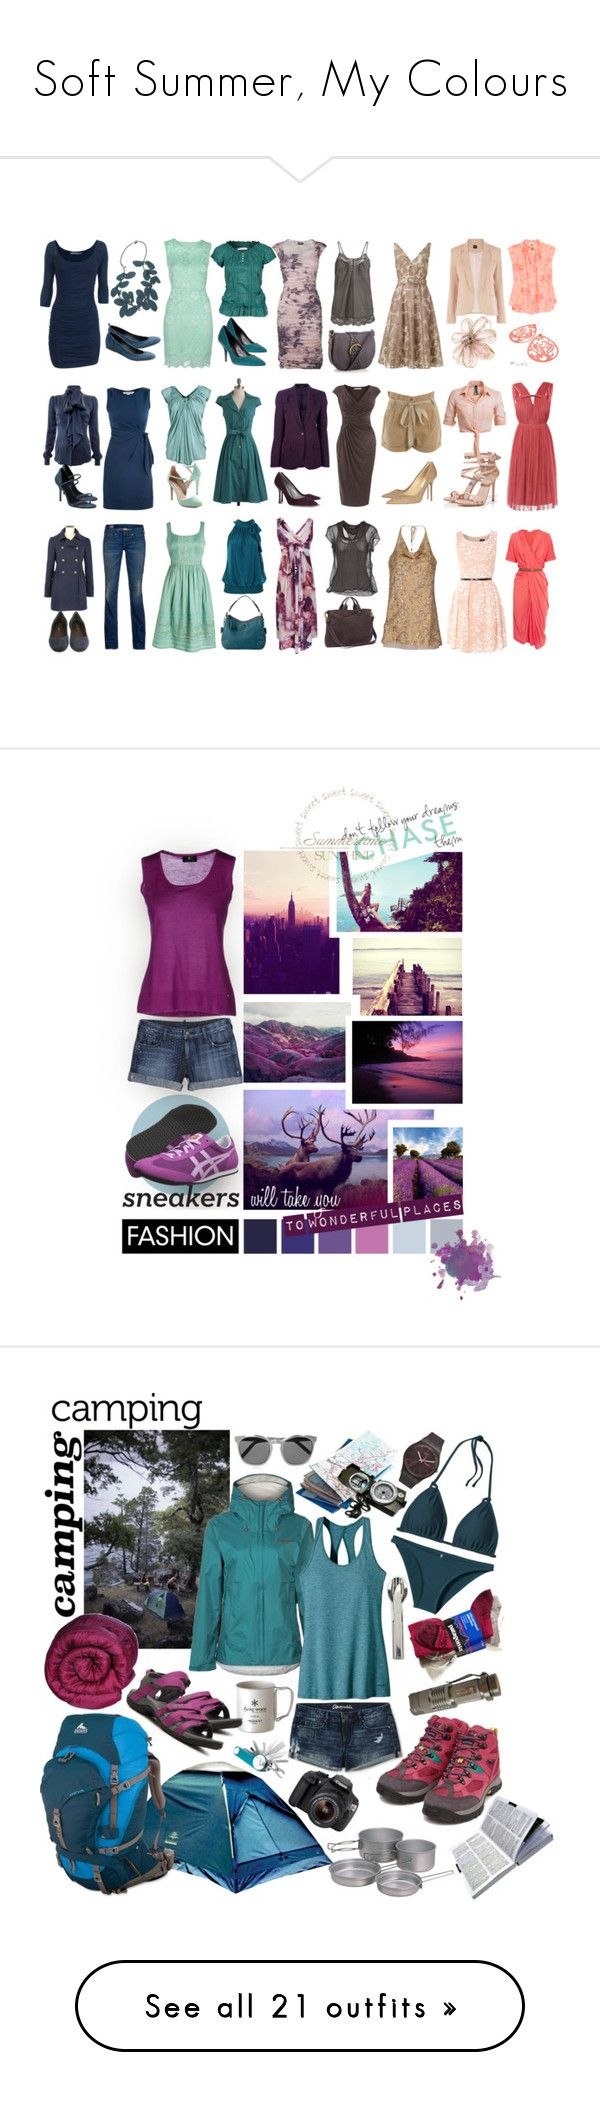 """""""Soft Summer, My Colours"""" by nyrvelli ❤ liked on Polyvore featuring Sergio Rossi, Lanvin, Diane Von Furstenberg, Safiyaa, Alexander Wang, Jimmy Choo, Maison Margiela, Plein Sud Jeanius, Miss Selfridge and Le Silla"""